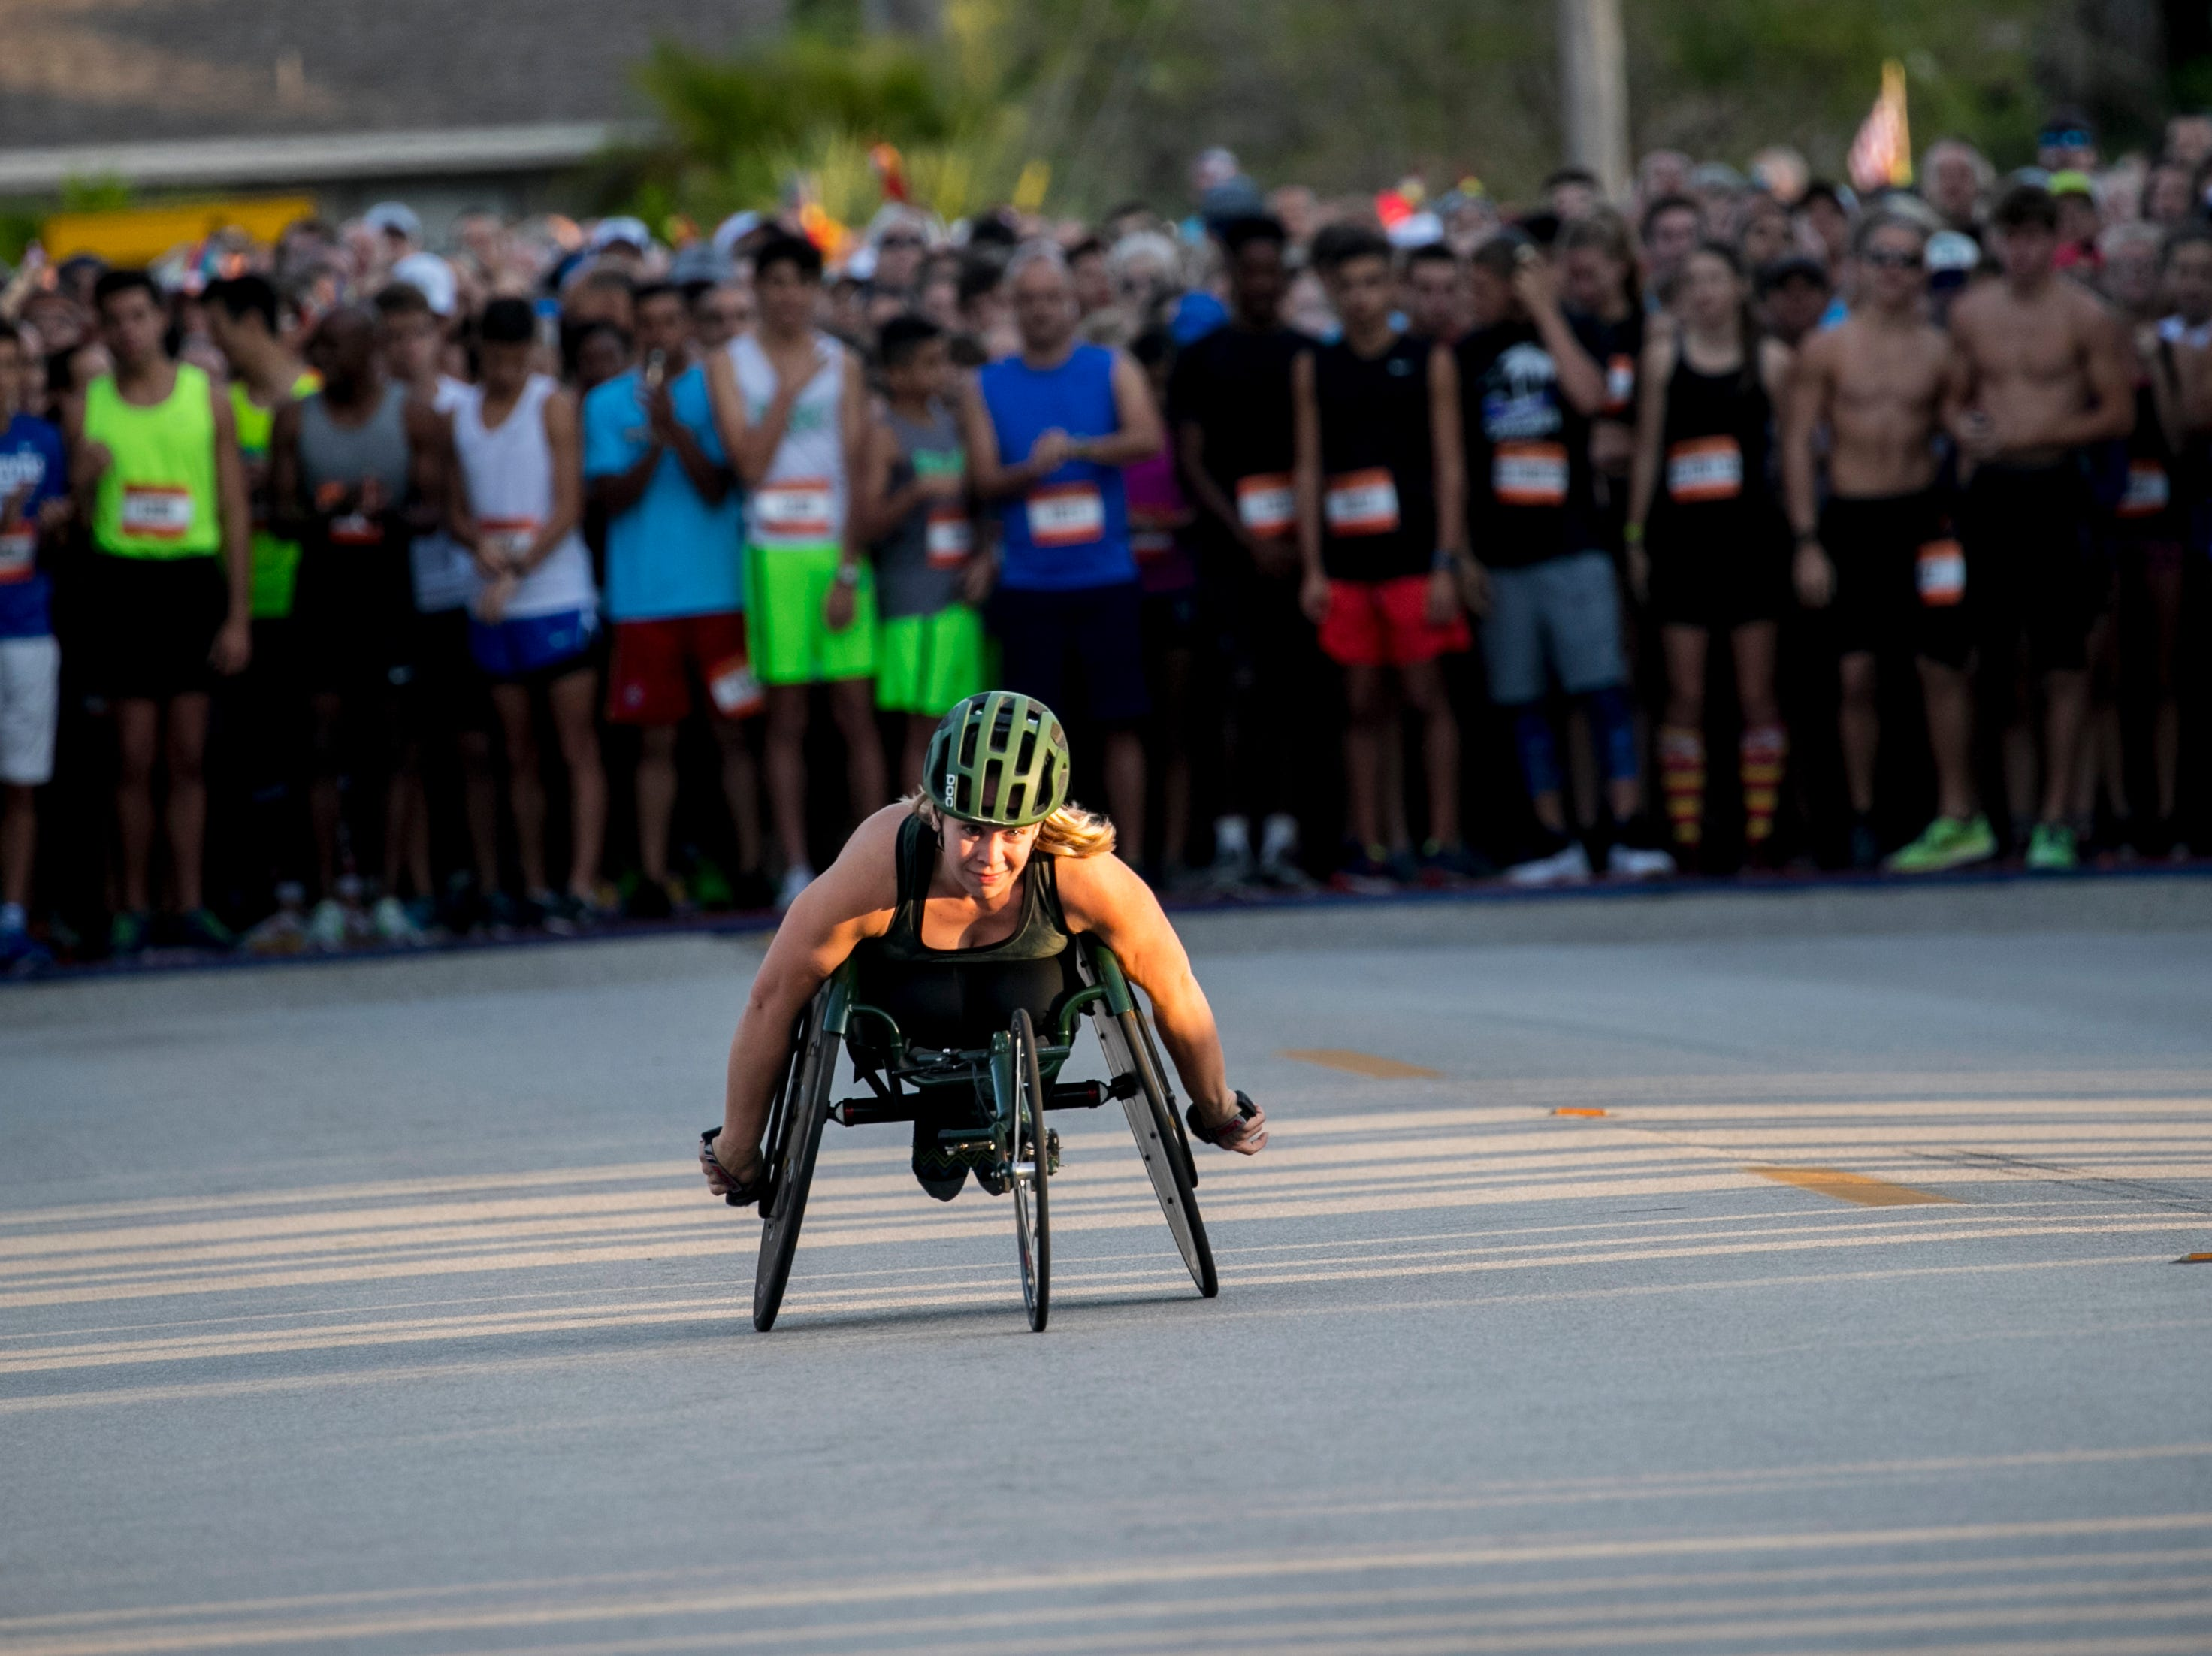 Arielle Rausin starts the 39th Annual Turkey Trot 5K Run/Walk on Thursday, November 22, 2018, in Cape Coral. Rausin finished with a time of 13:03.